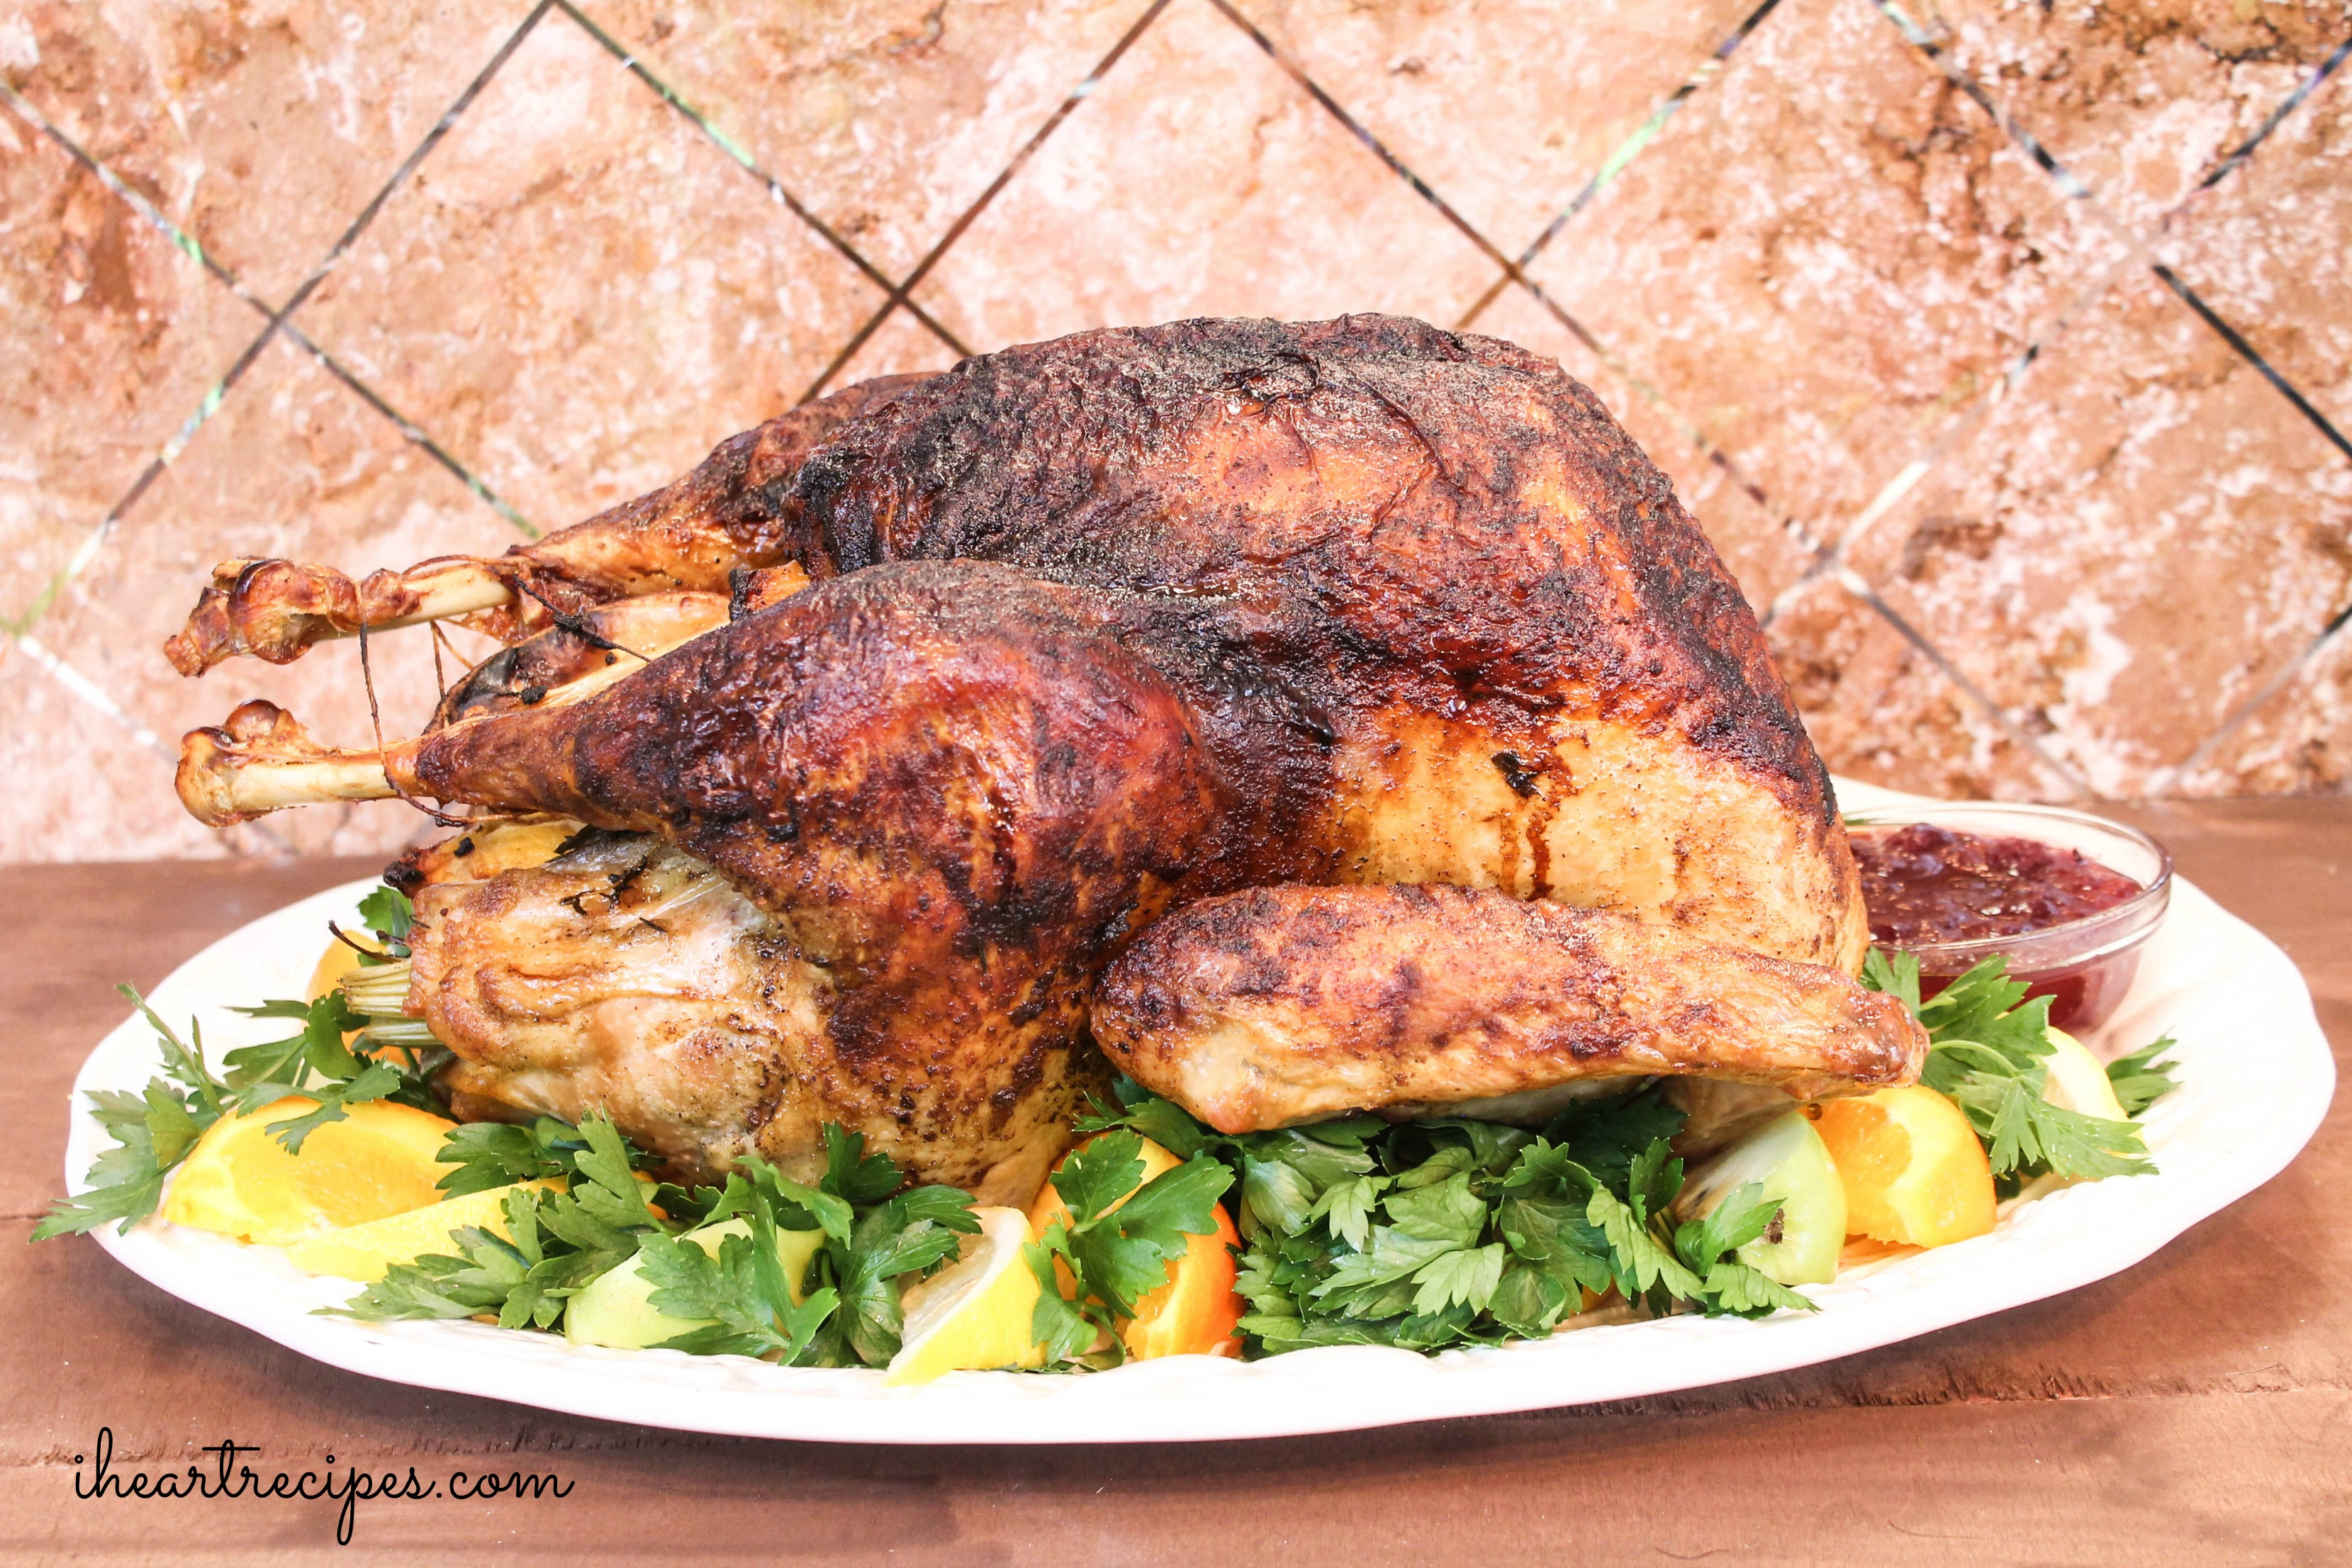 This juicy whole roasted turkey is perfect for Thanksgiving dinner.